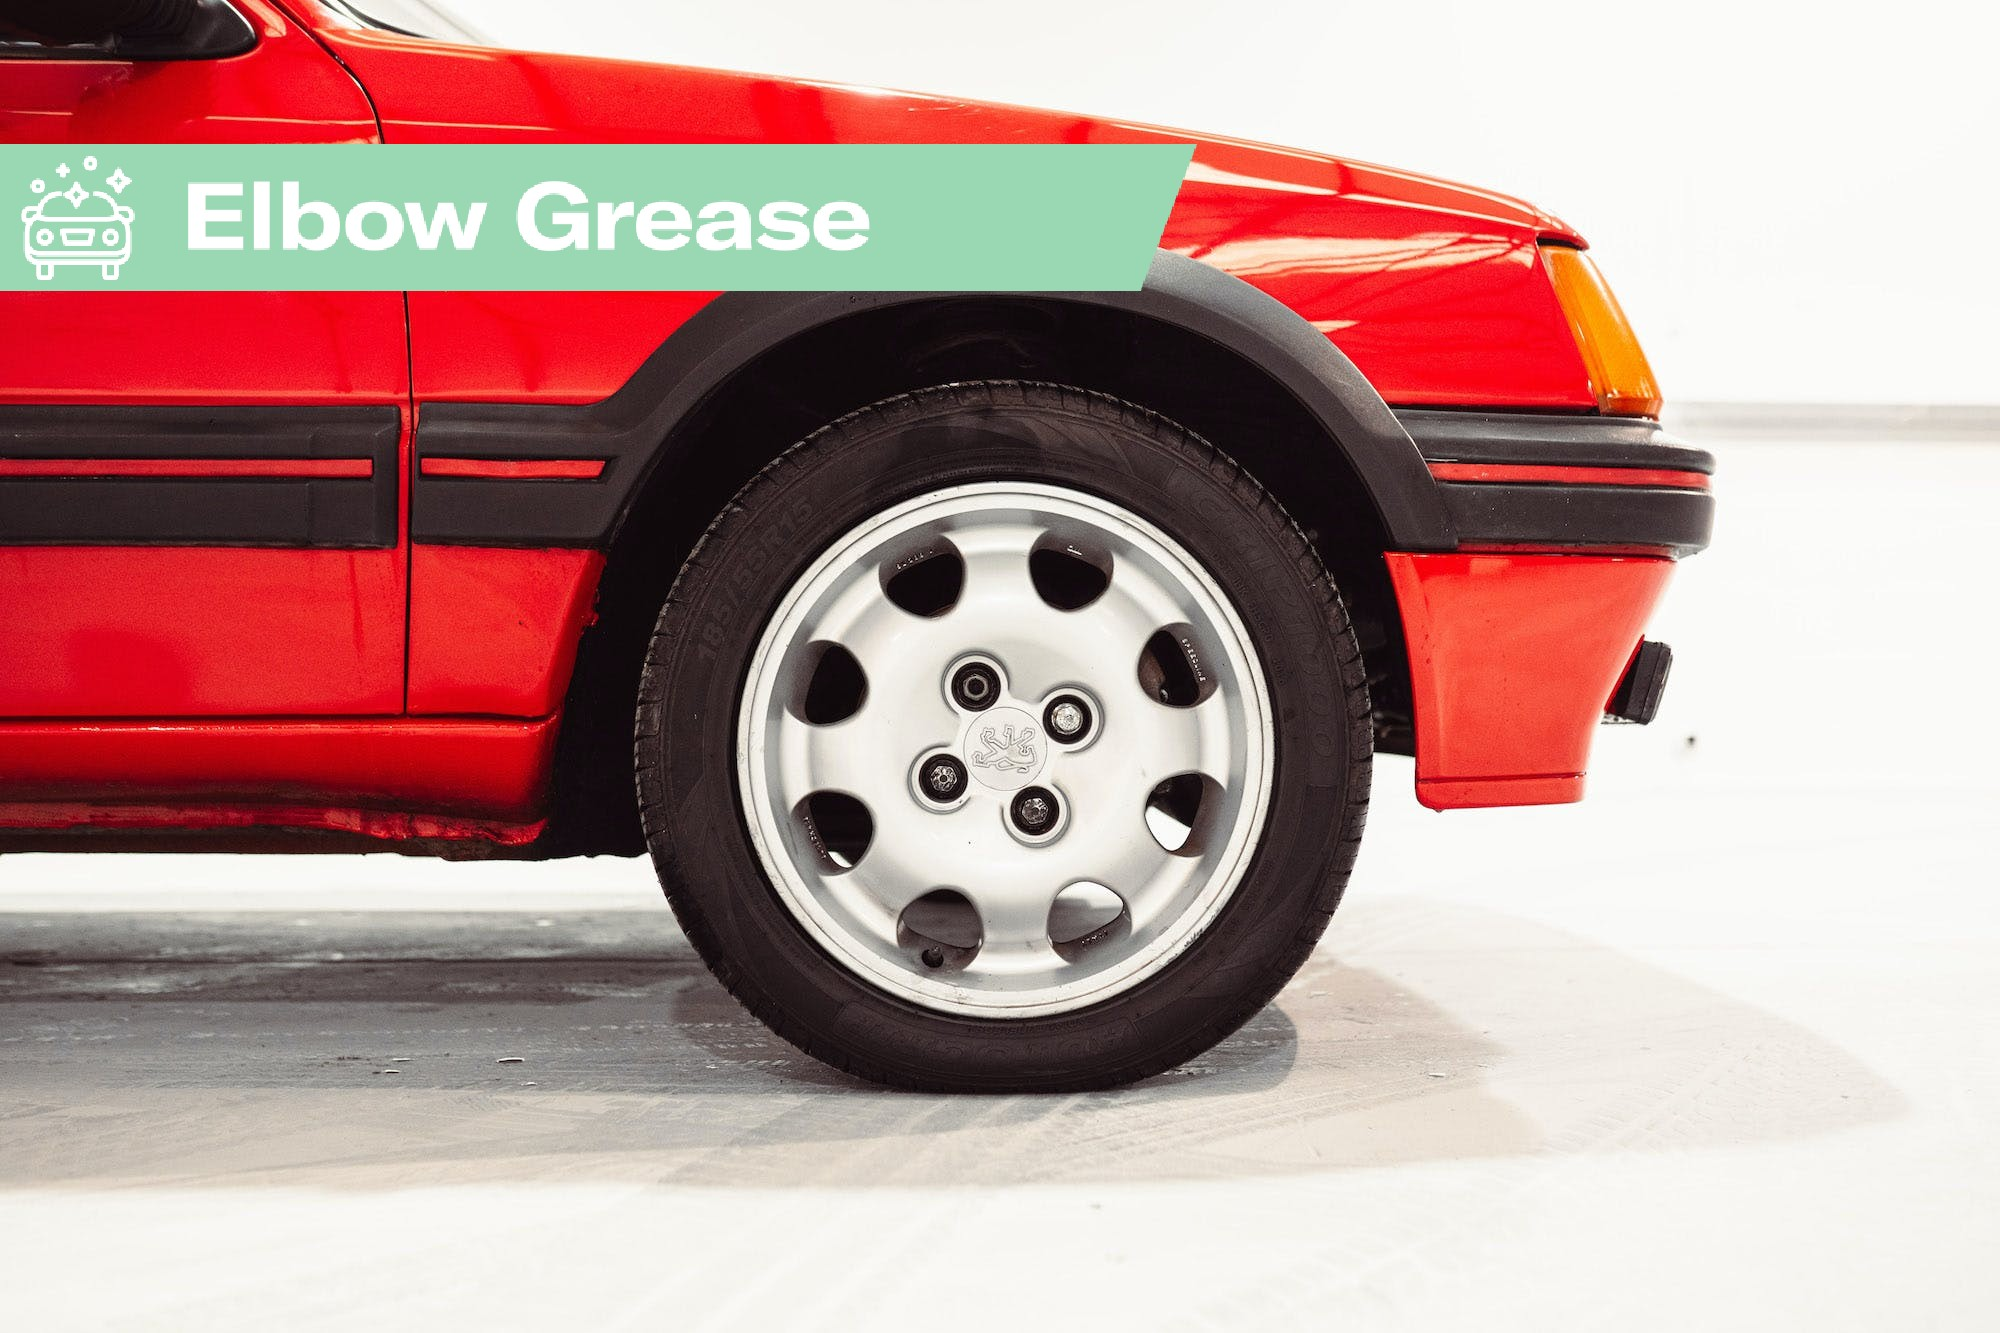 Elbow Grease: Don't let wheel cleaning get you in a spin